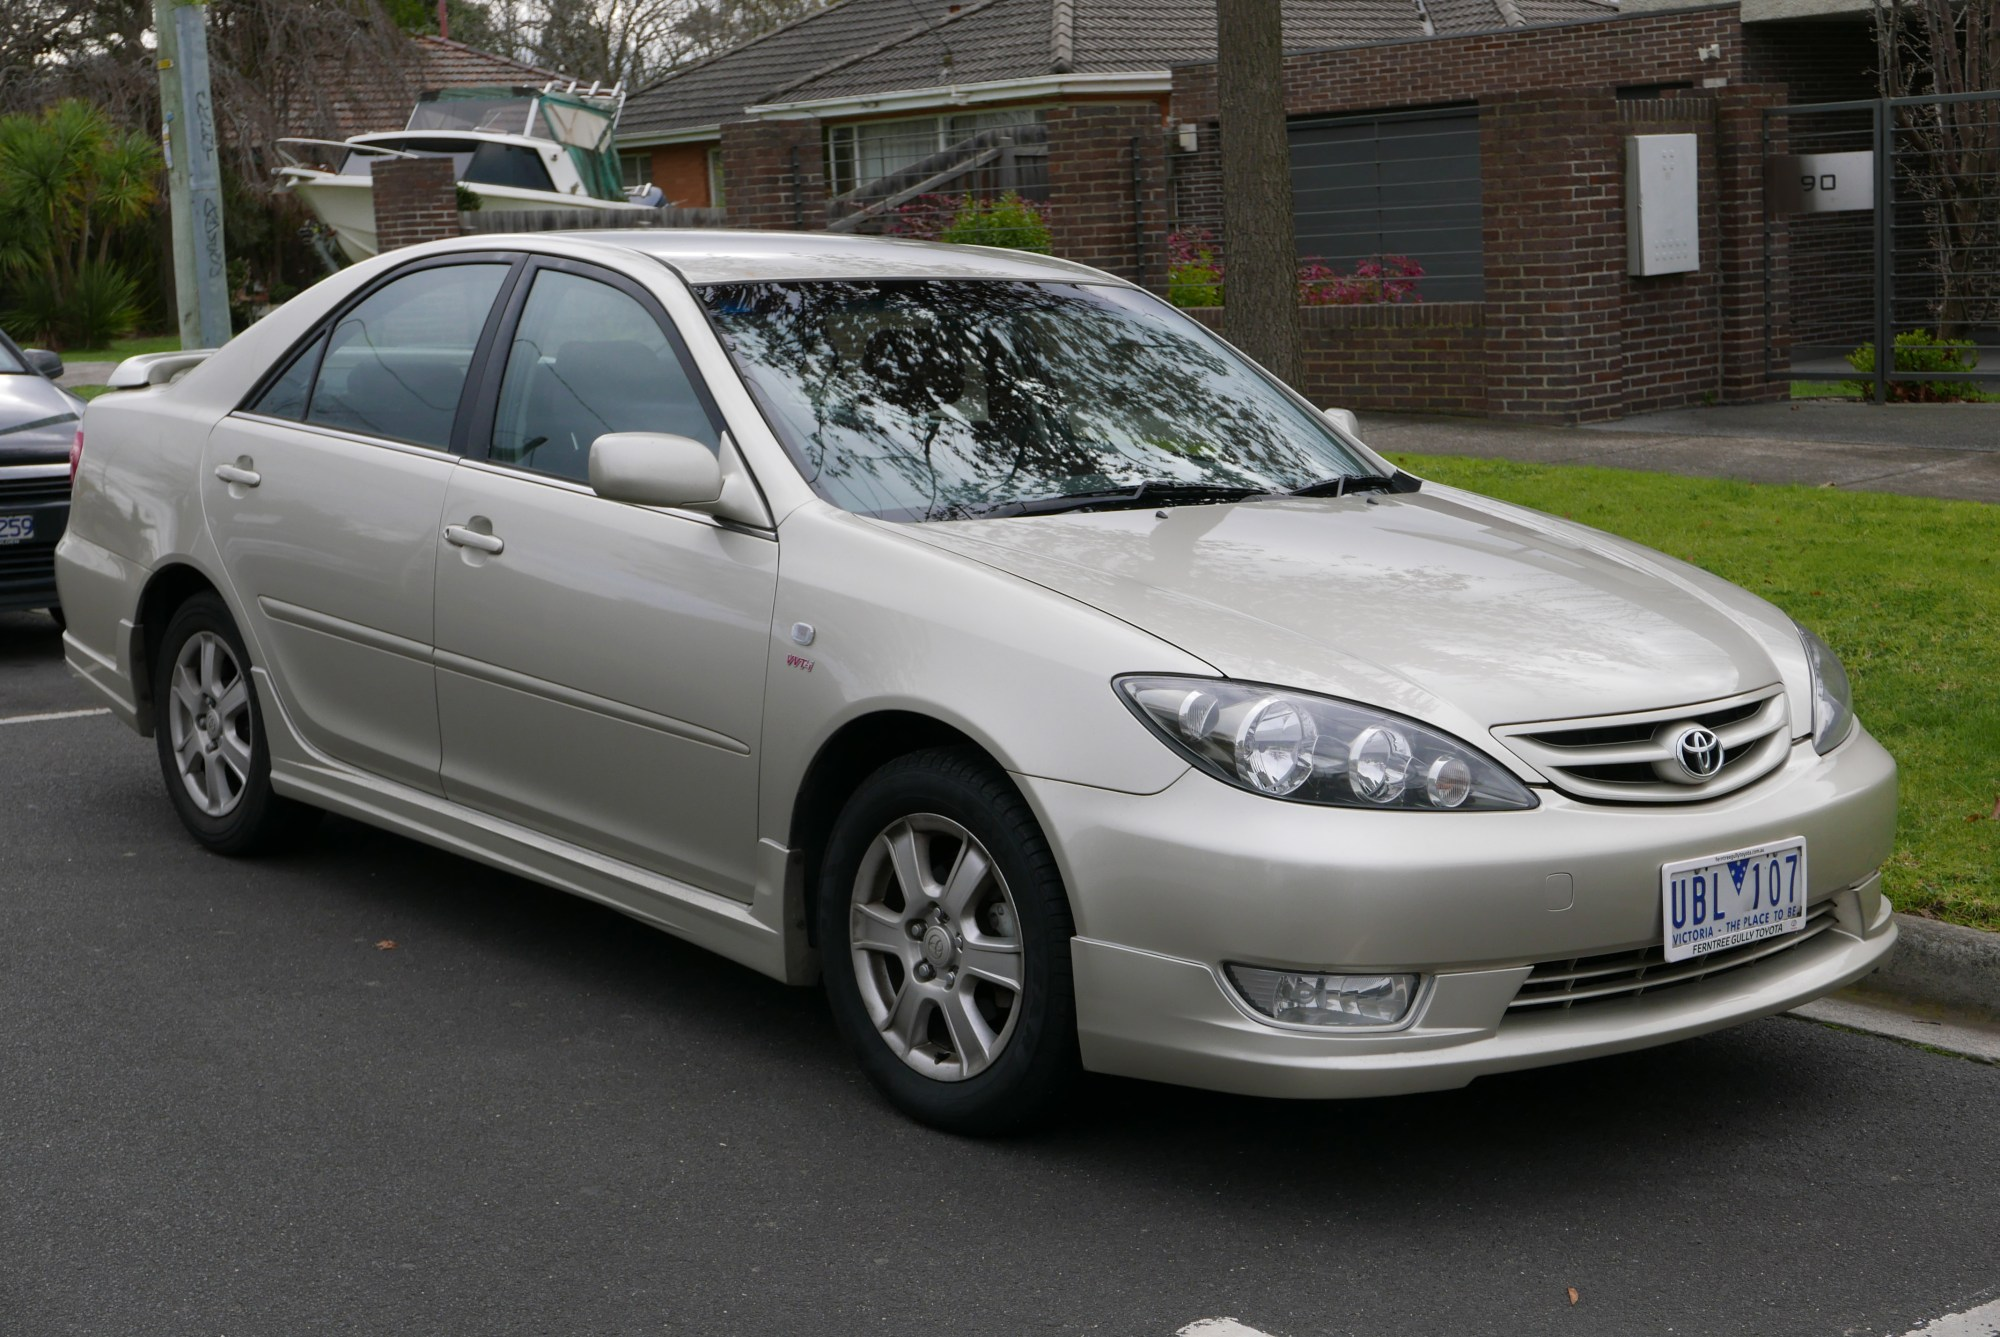 hight resolution of 2001 camry xle fuse box 2001 camry tail light fuse wiring diagram elsalvadorla 2004 toyota rav4 fuse box diagram toyota rav4 fuse box location